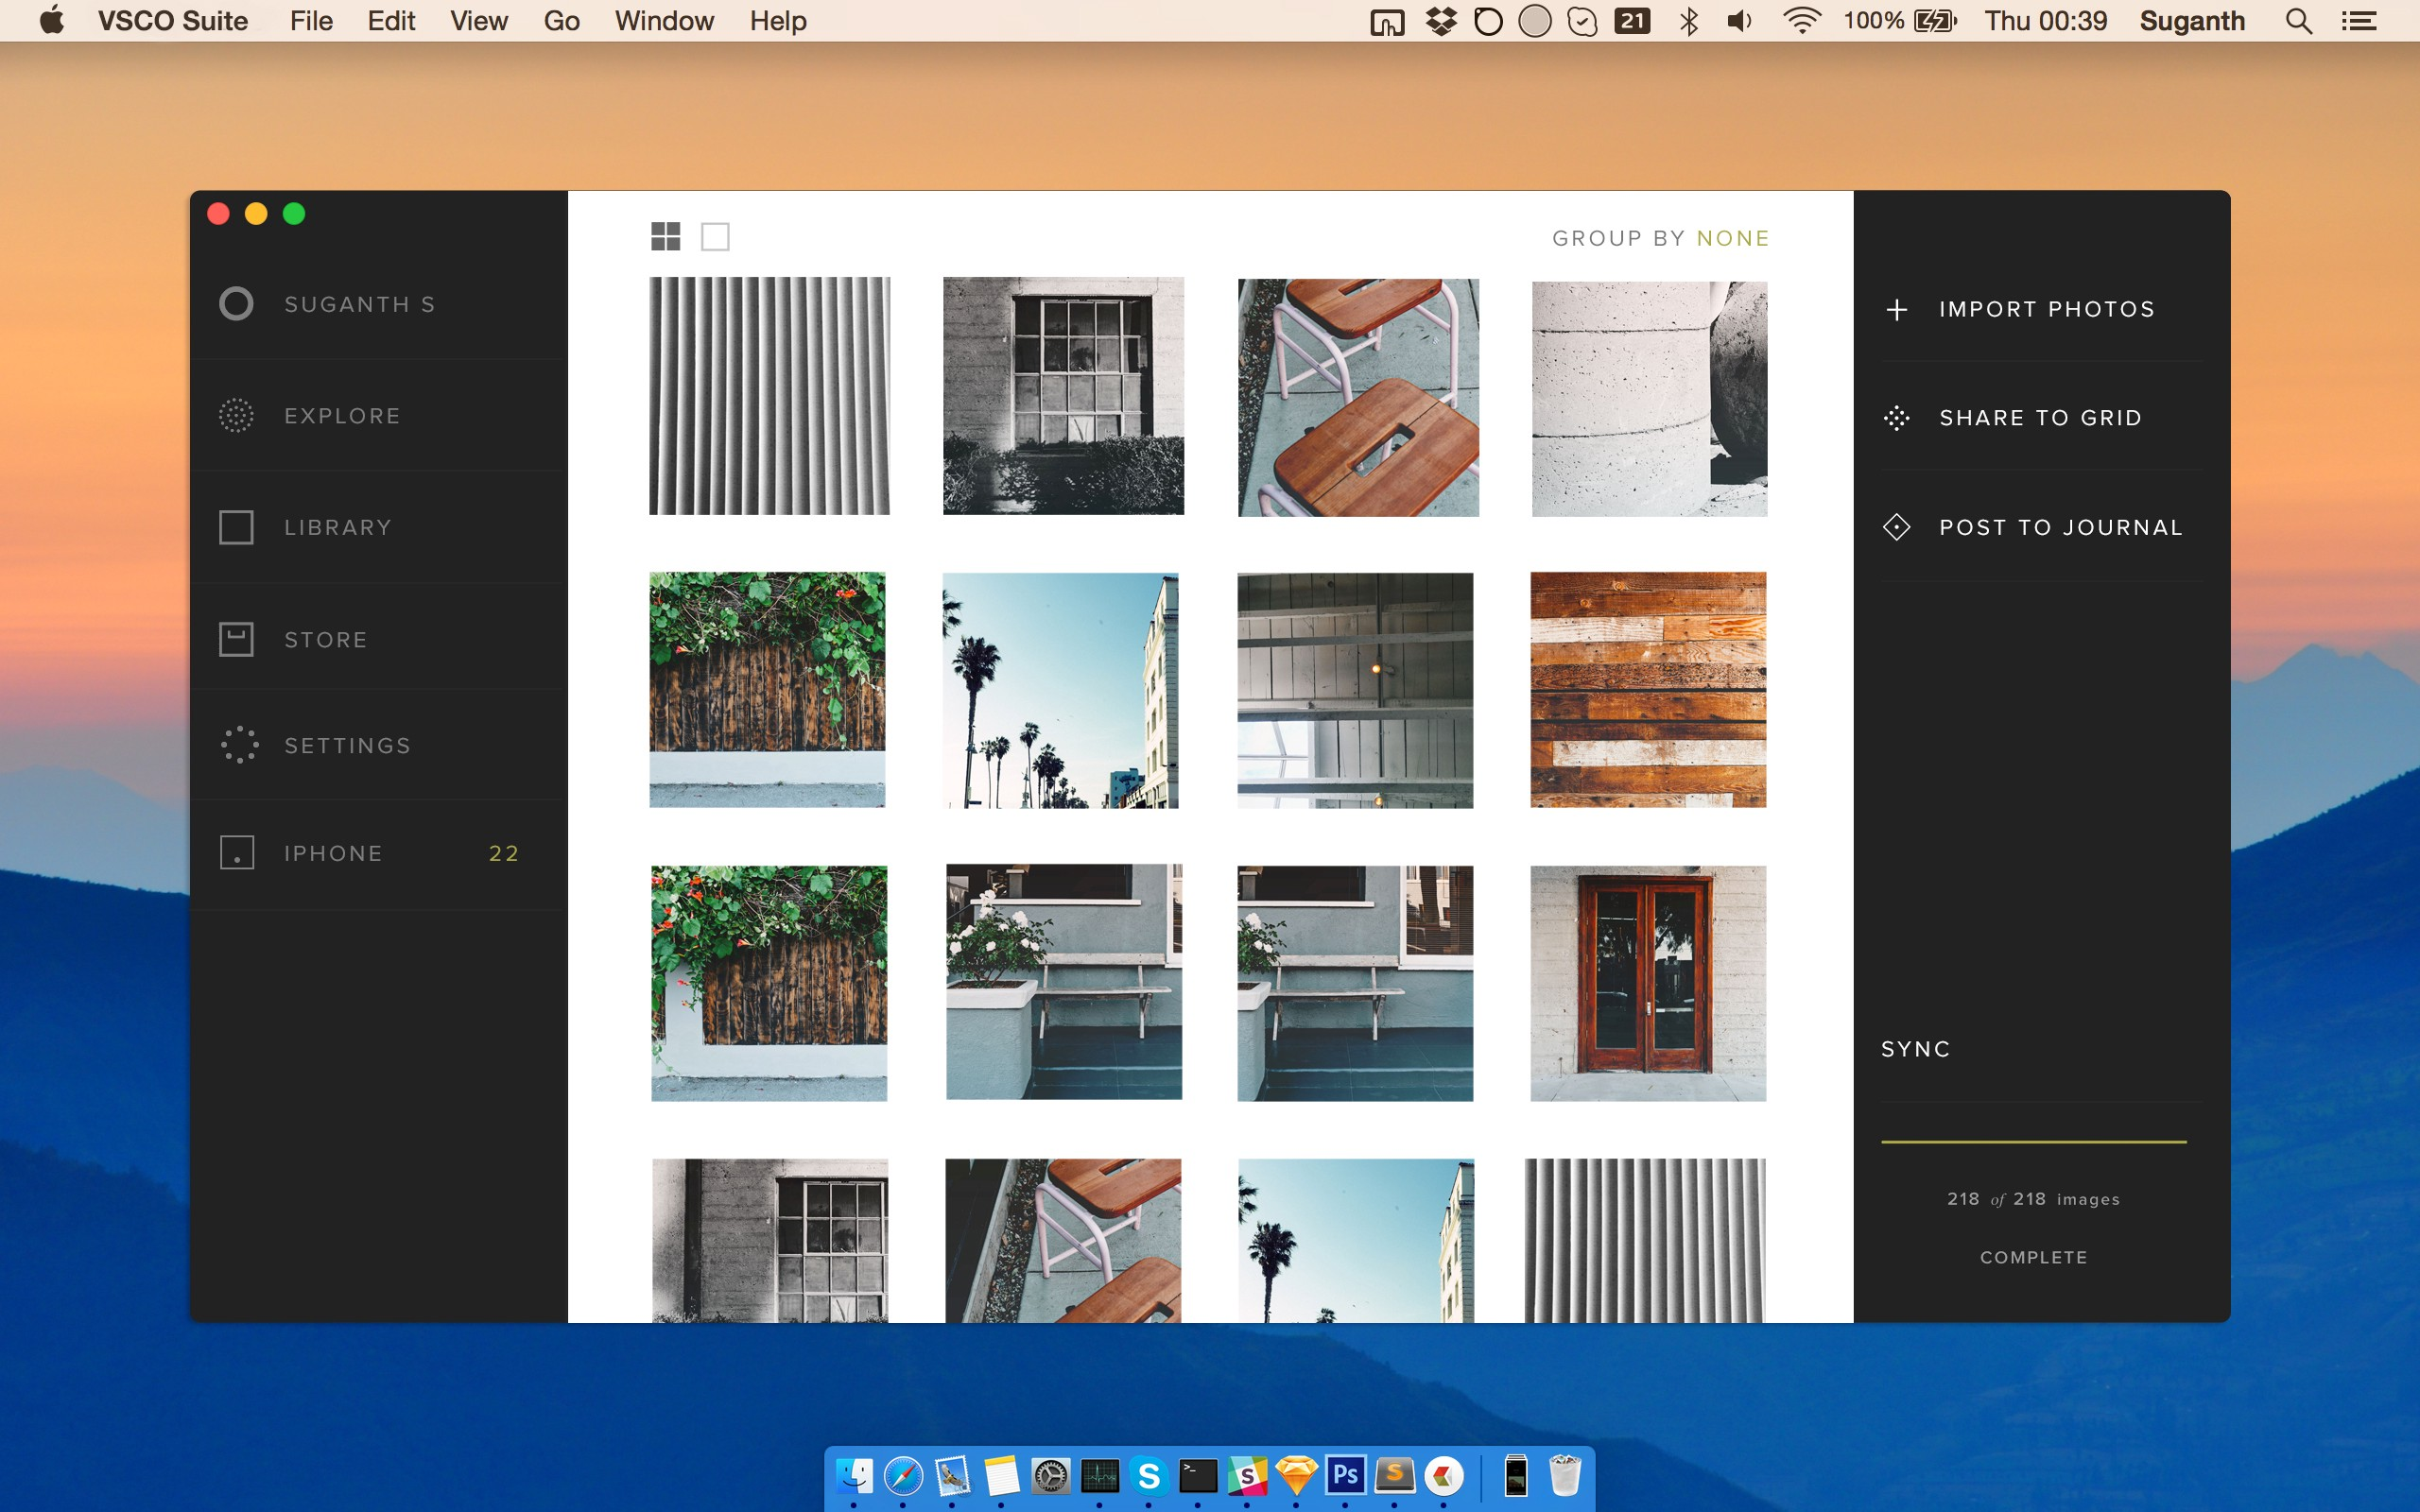 Vsco Suite For Mac Os X Concept To Bring Simple Image Editing By Suganth Let S Make Good Products Medium